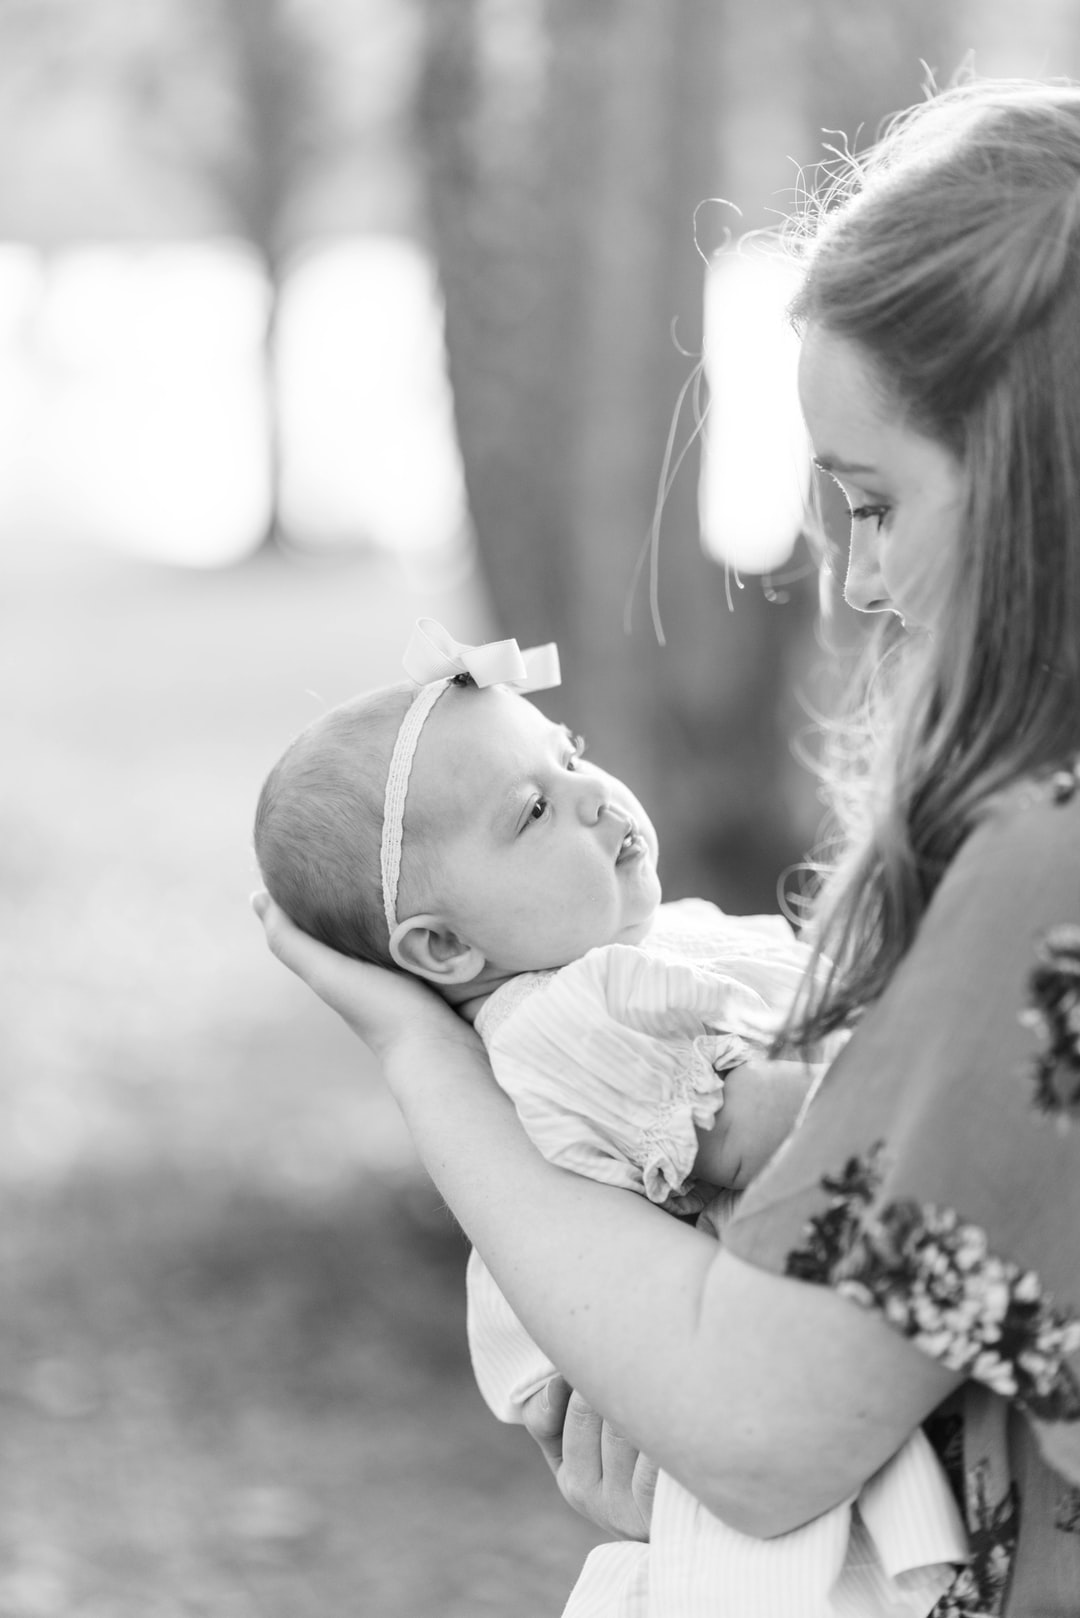 500+ Mother And Baby Pictures HD | Download Free Images ...